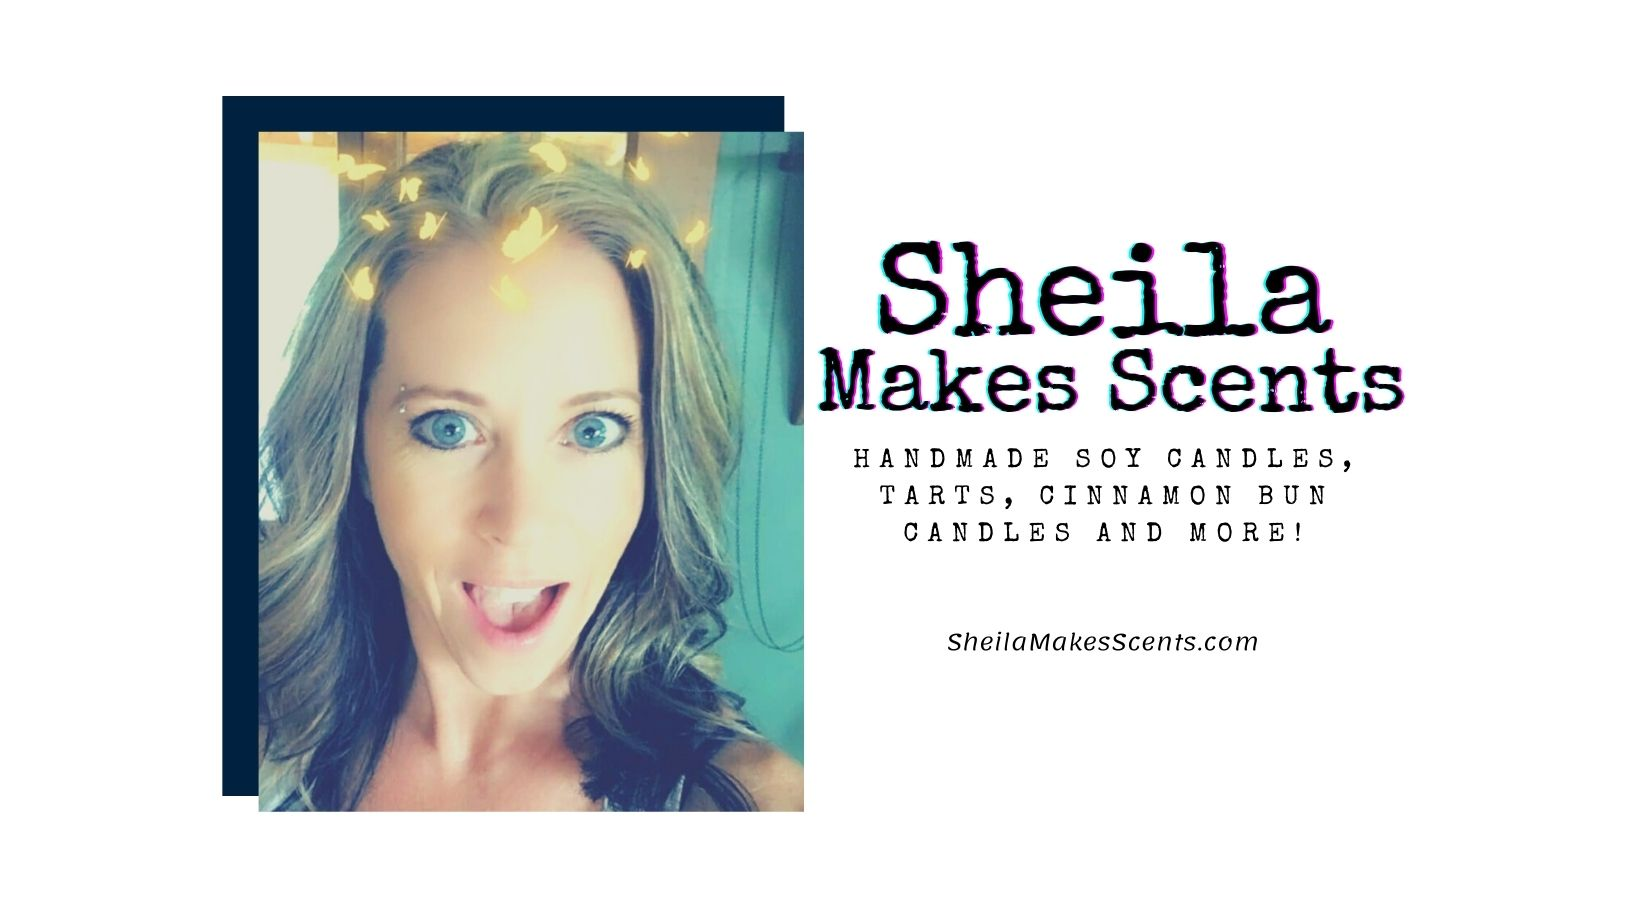 Sheila Makes Scents - handmade soy candles and melts #soycandles #soymelts #soytarts #candles #handmadecandles